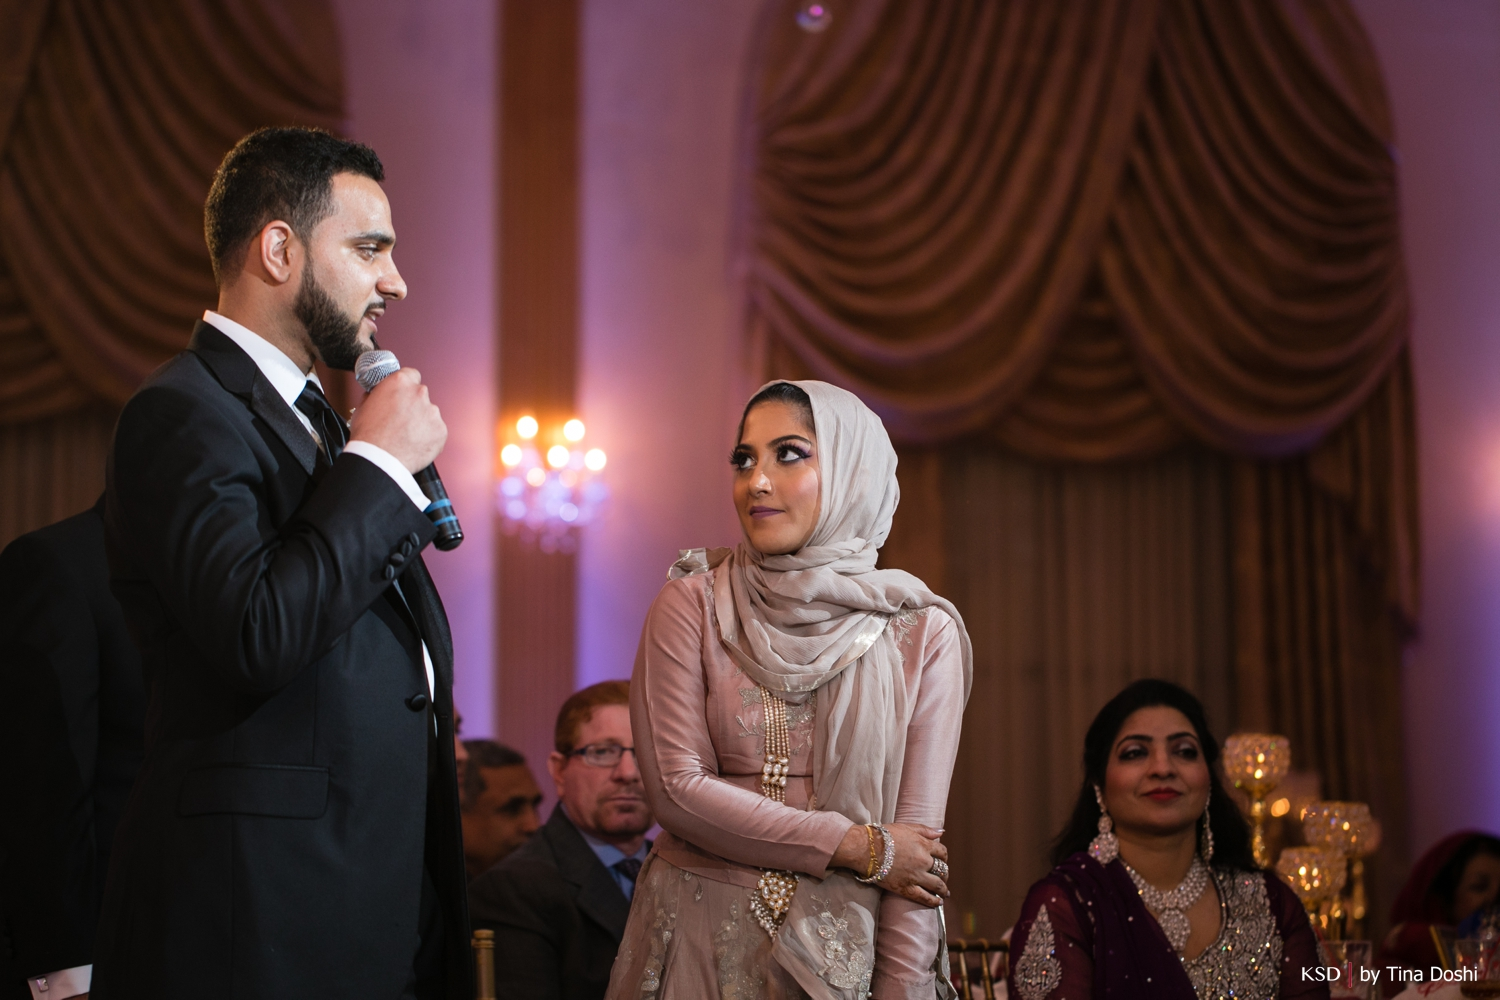 nj_south_asian_wedding_0120